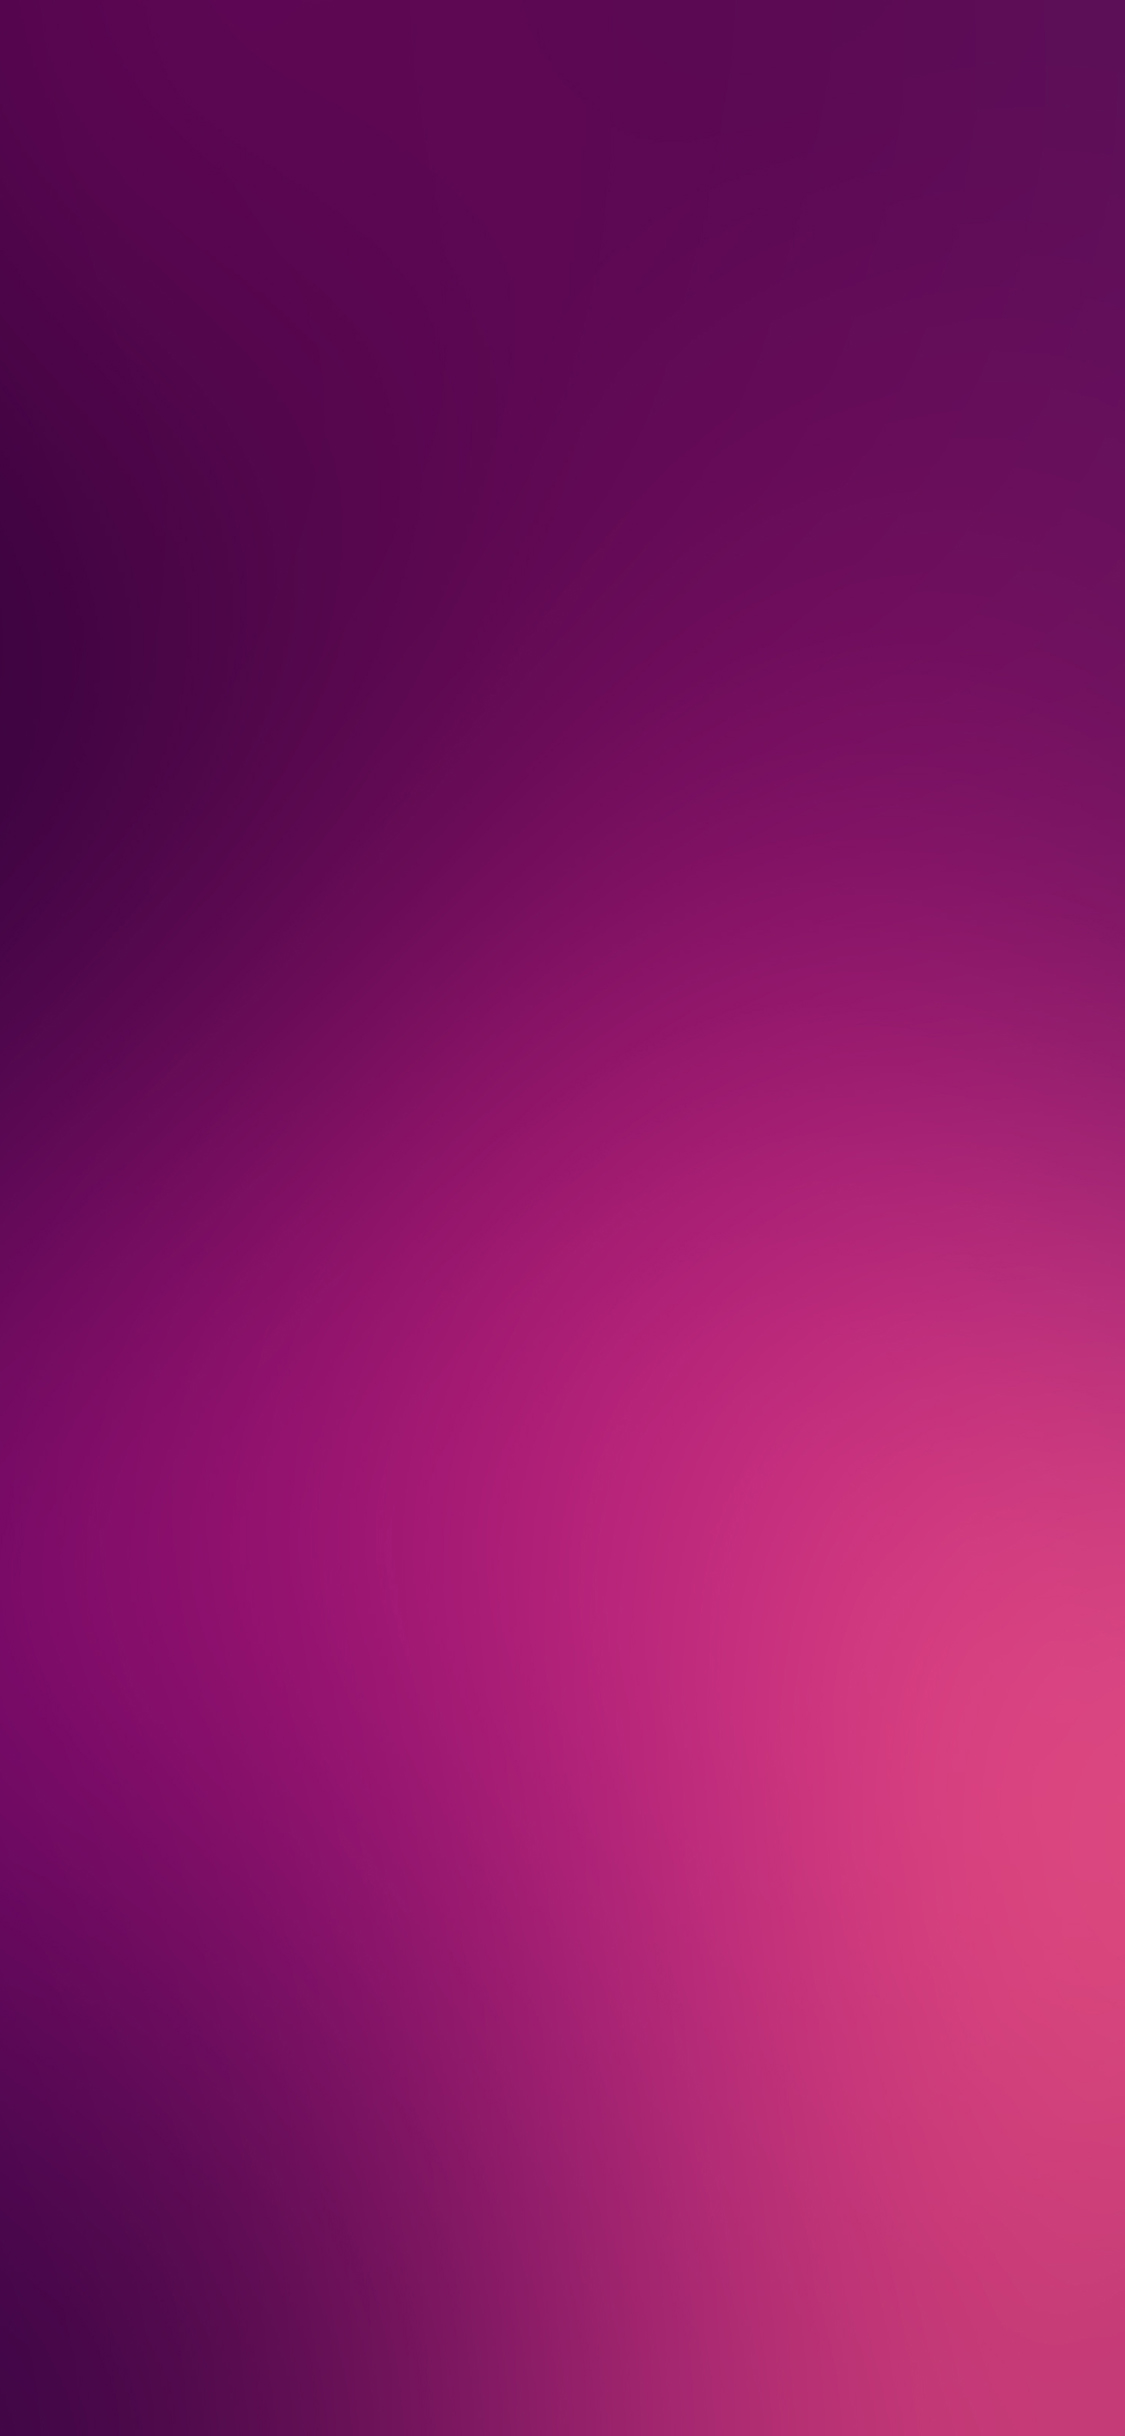 iPhoneXpapers.com-Apple-iPhone-wallpaper-sc27-lovely-pinkupinku-morning-blur